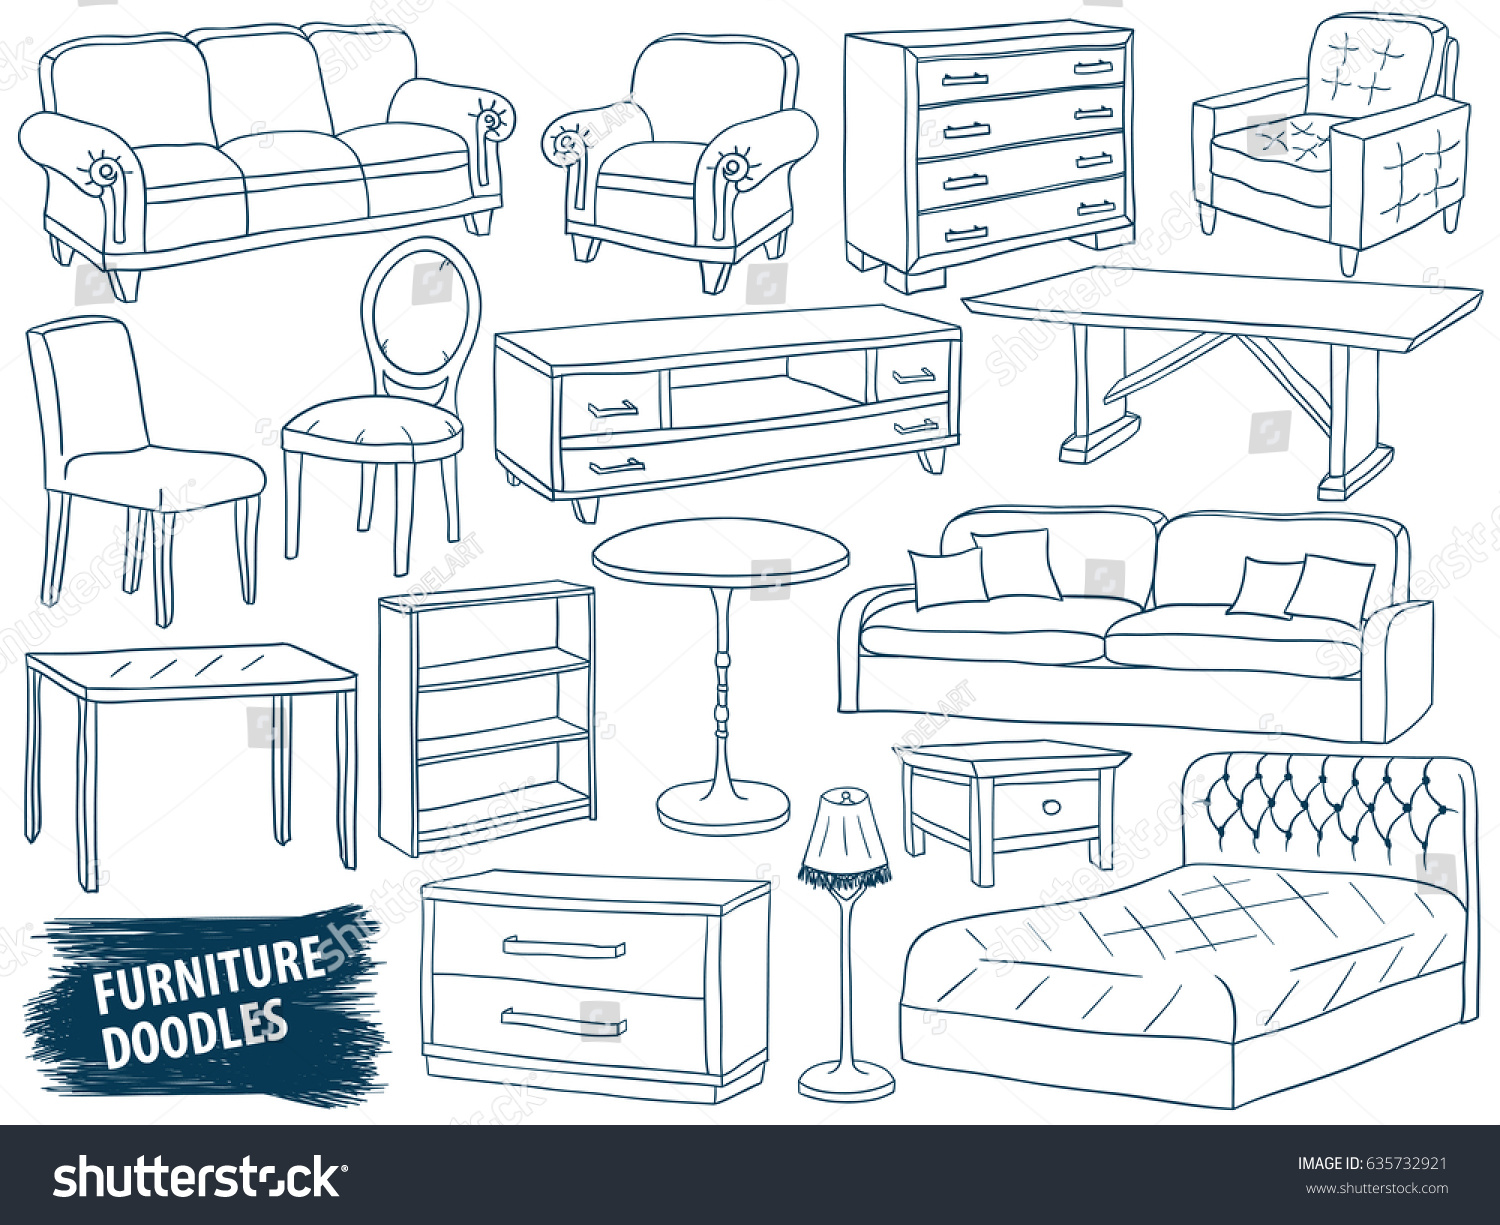 Modern furniture design sketches Desk Organizer Furniture Doodles Set Interior Design Sketch Collection Home Accessories Modern Armchair Retro Shutterstock Furniture Doodles Set Interior Design Sketch Stock Vector royalty